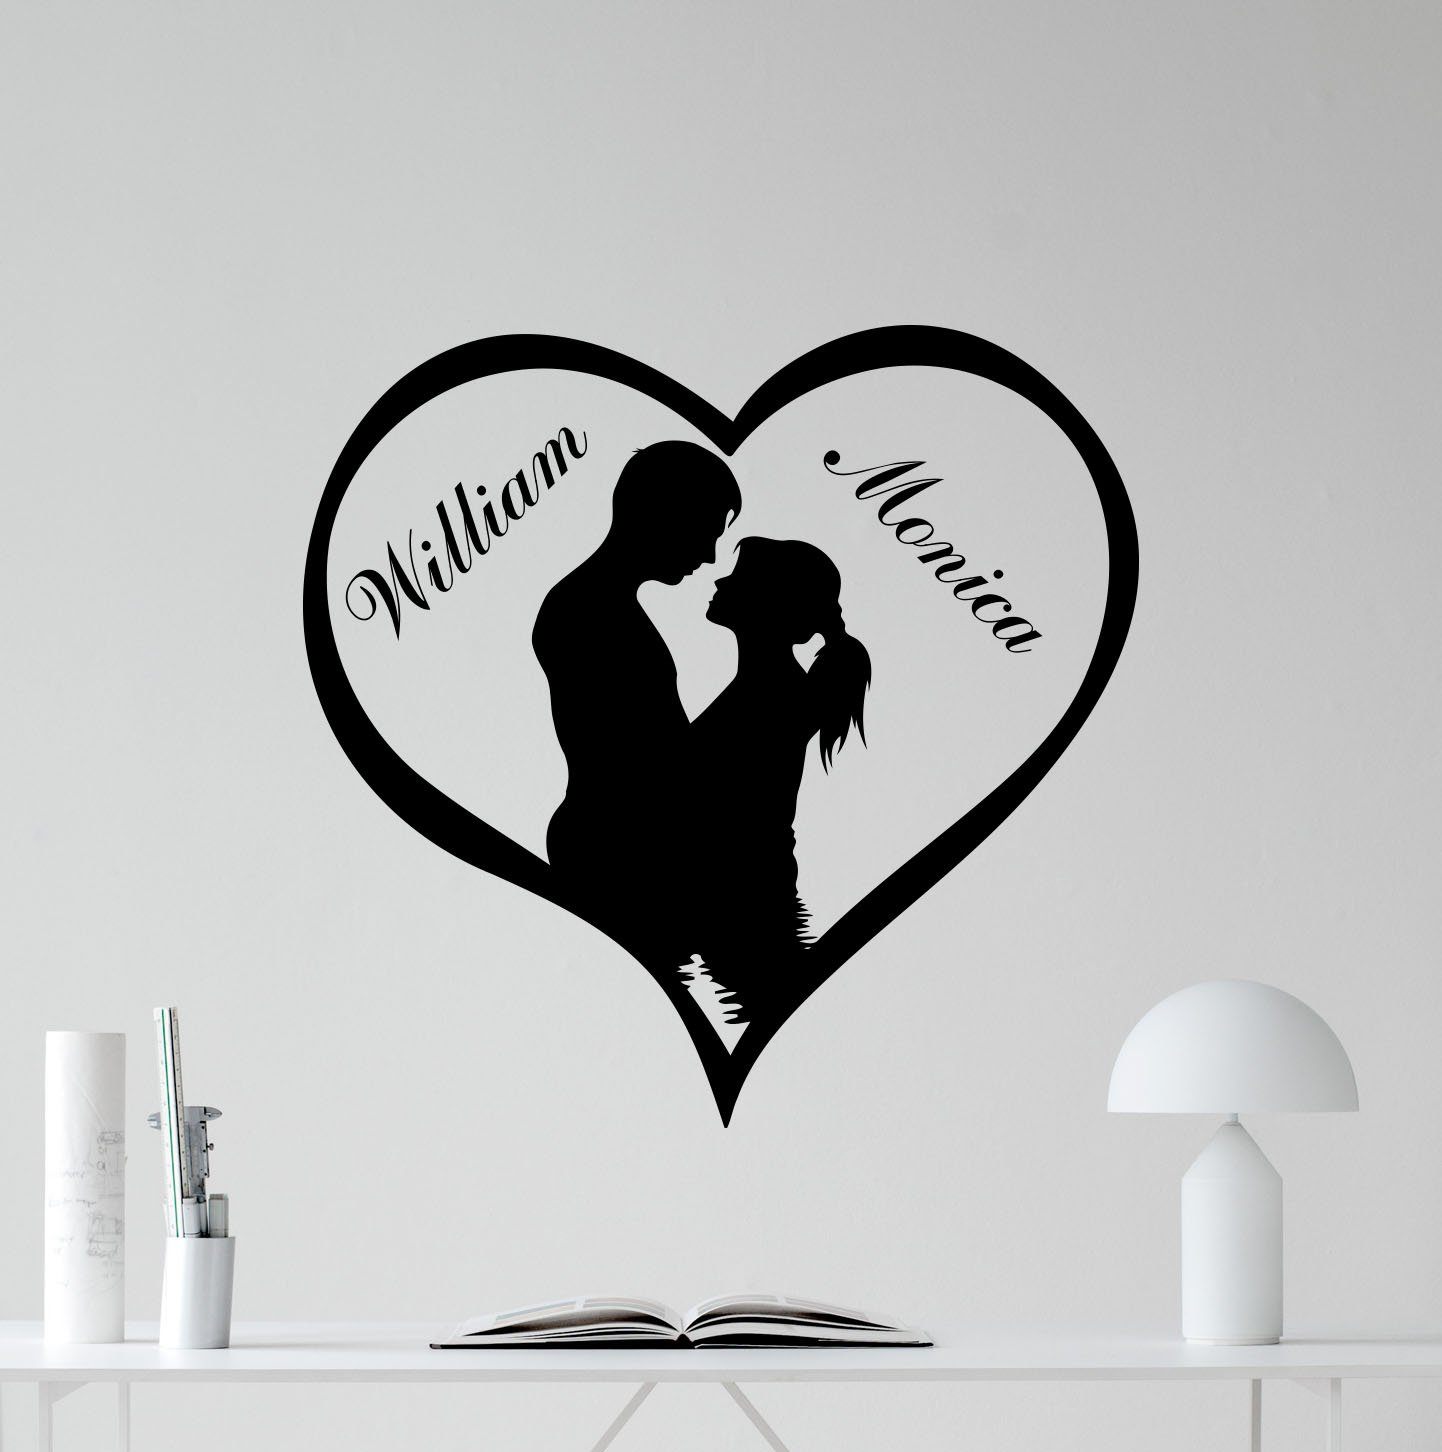 Custom name wall decal heart love man girl loving personalized vinyl sticker living room family personal name wall decor cool wall art design bedroom wall